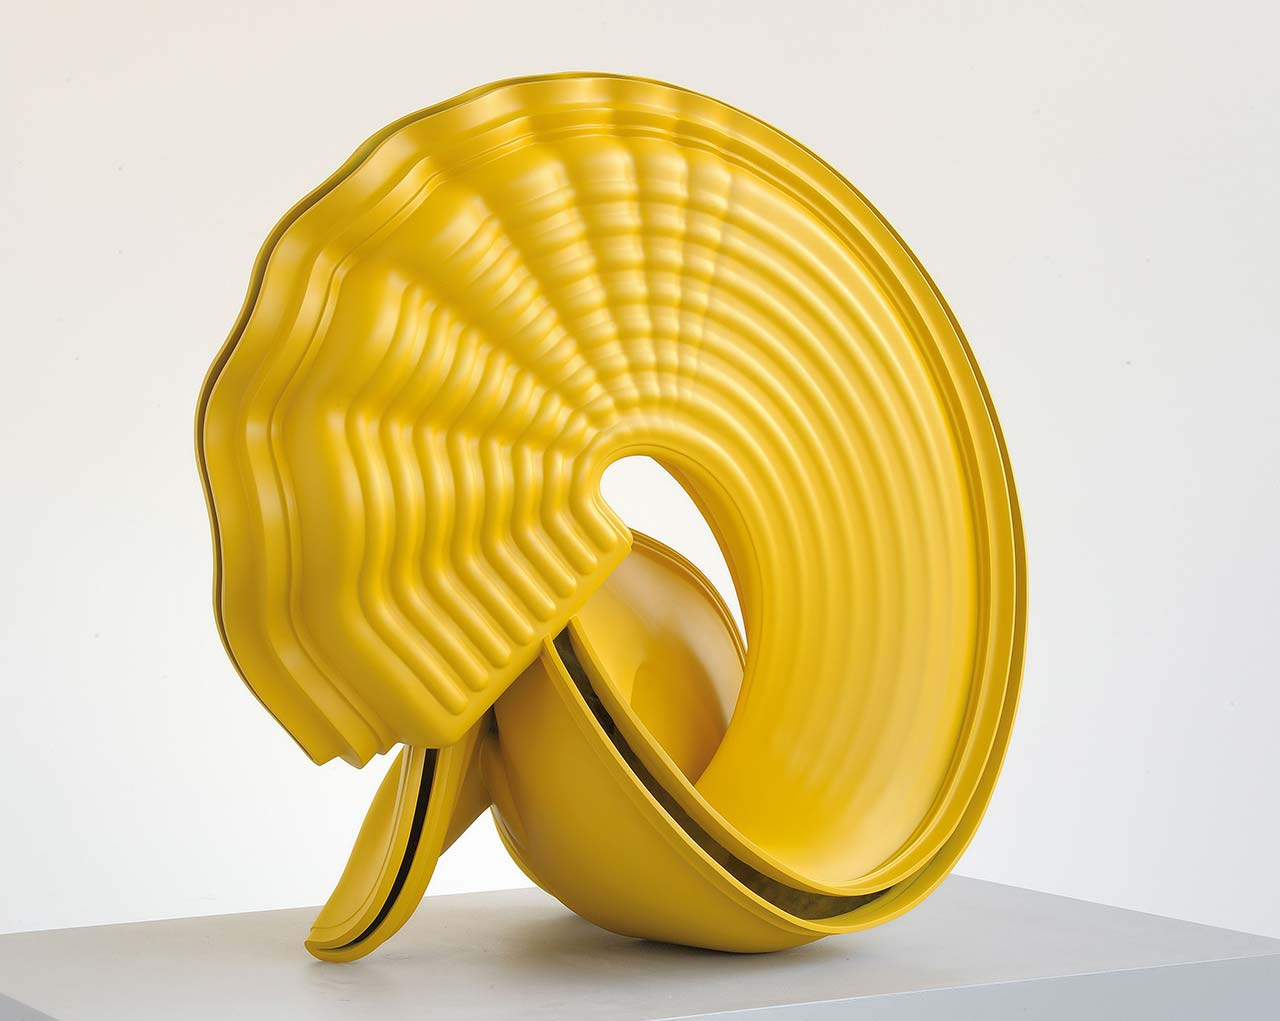 Tony Cragg, Outspan, 2007. Bronze. 95 x 100 x 62 cm. Photo by Charles Duprat.